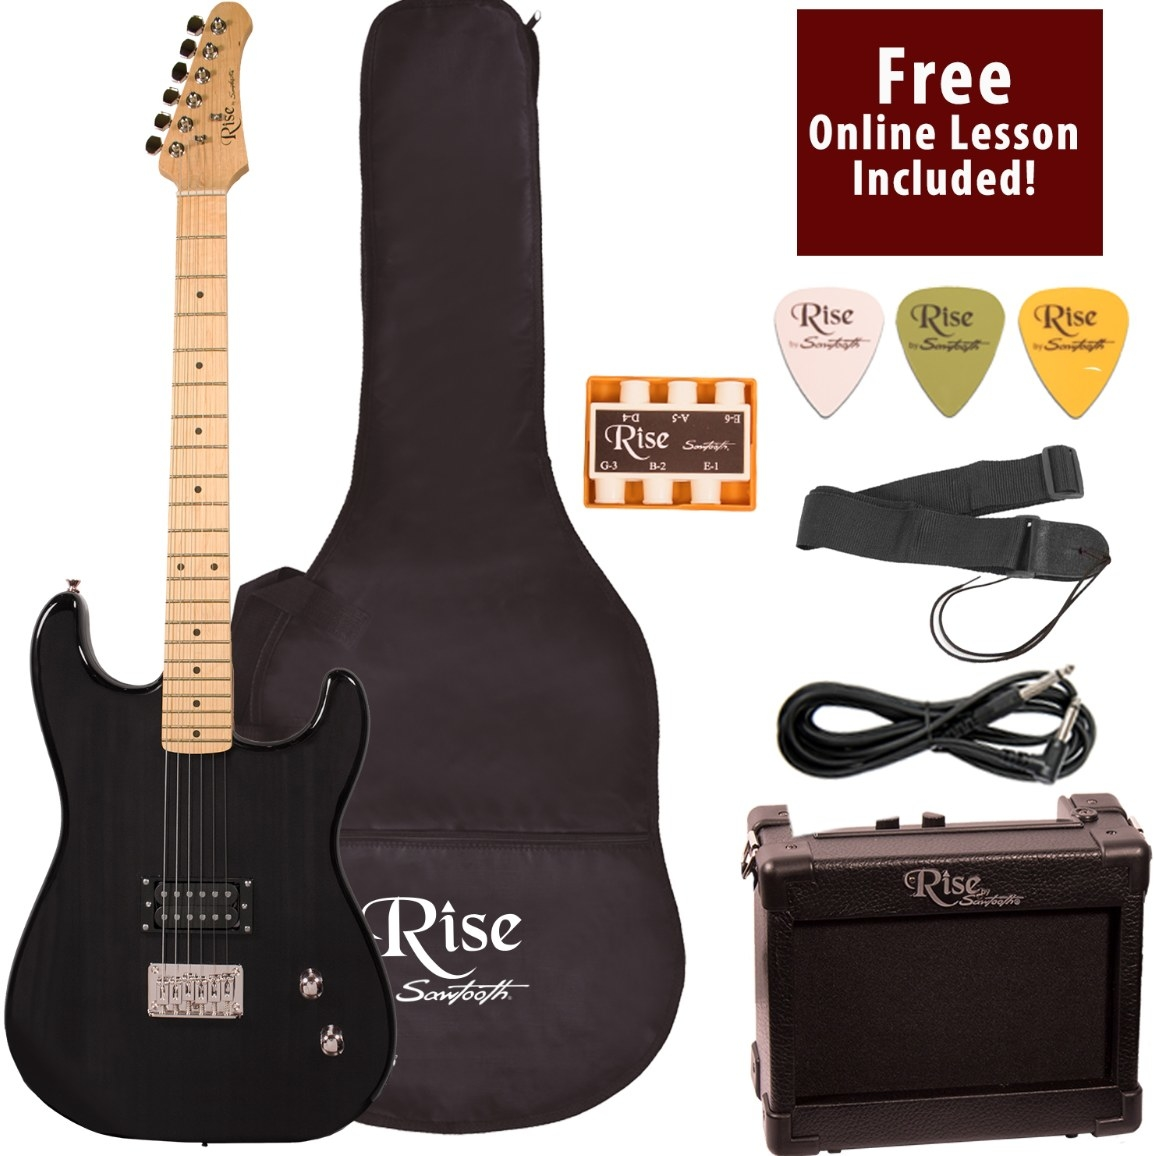 The beginner's guitar set in black with all its accessories